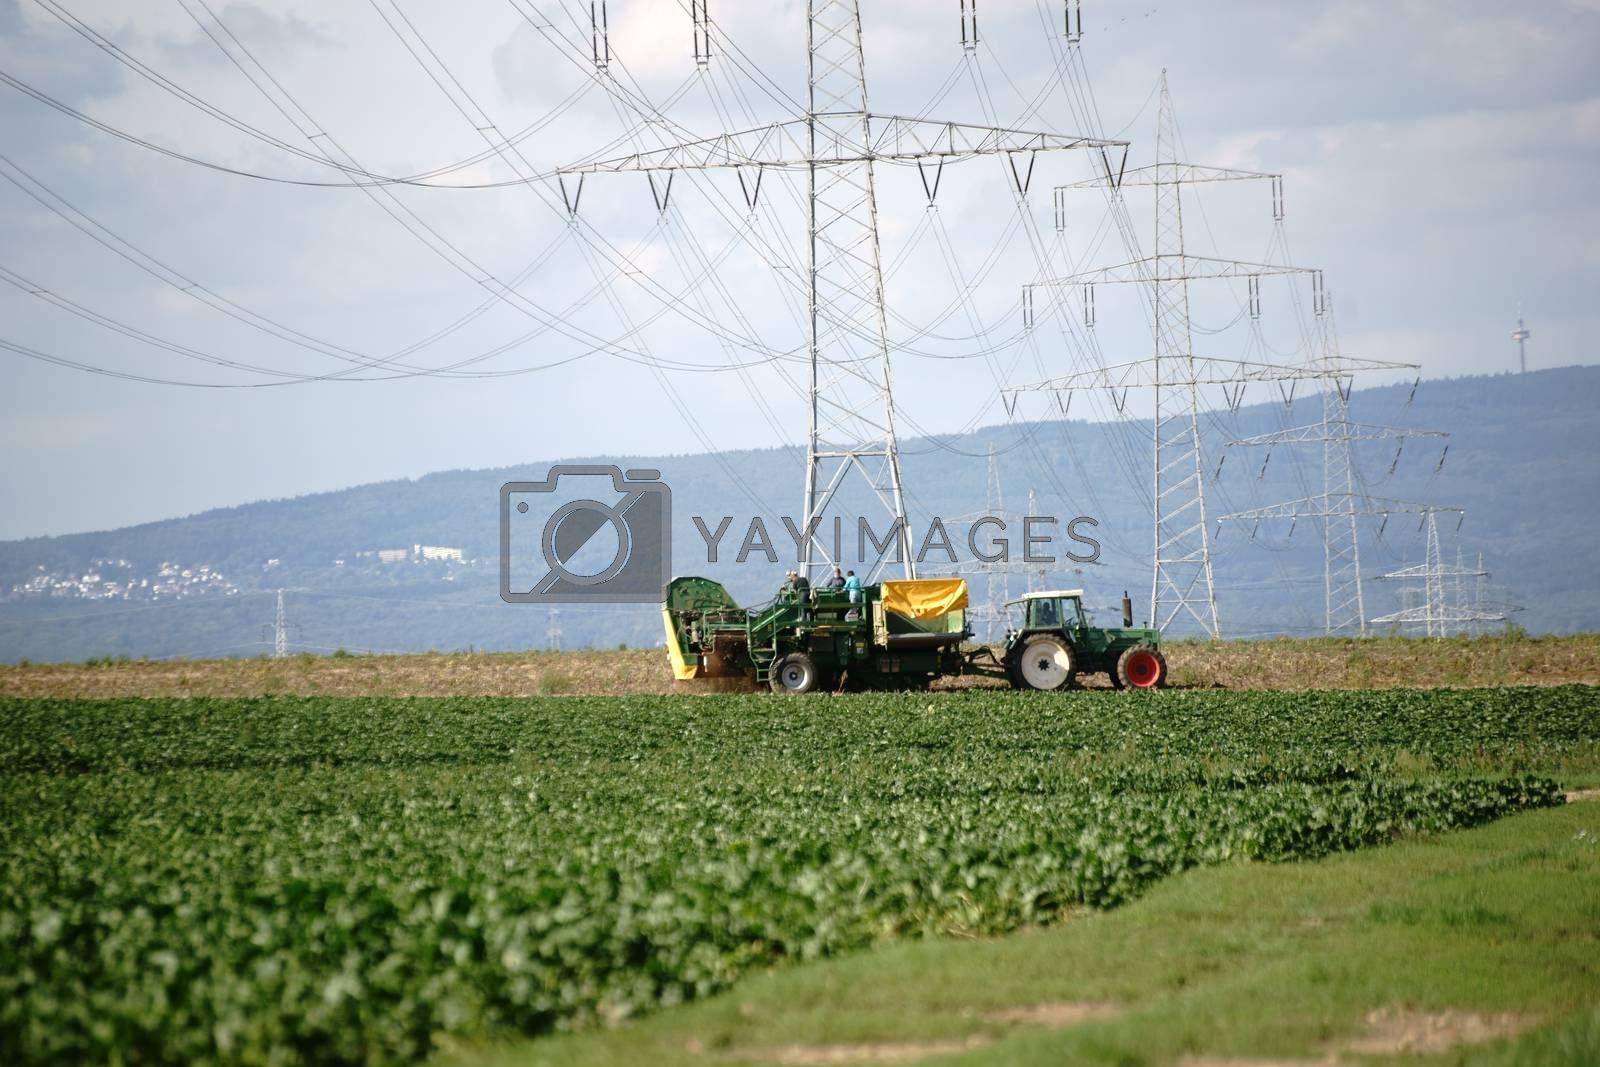 A tractor with a plow and harvest trailer on the potato field.